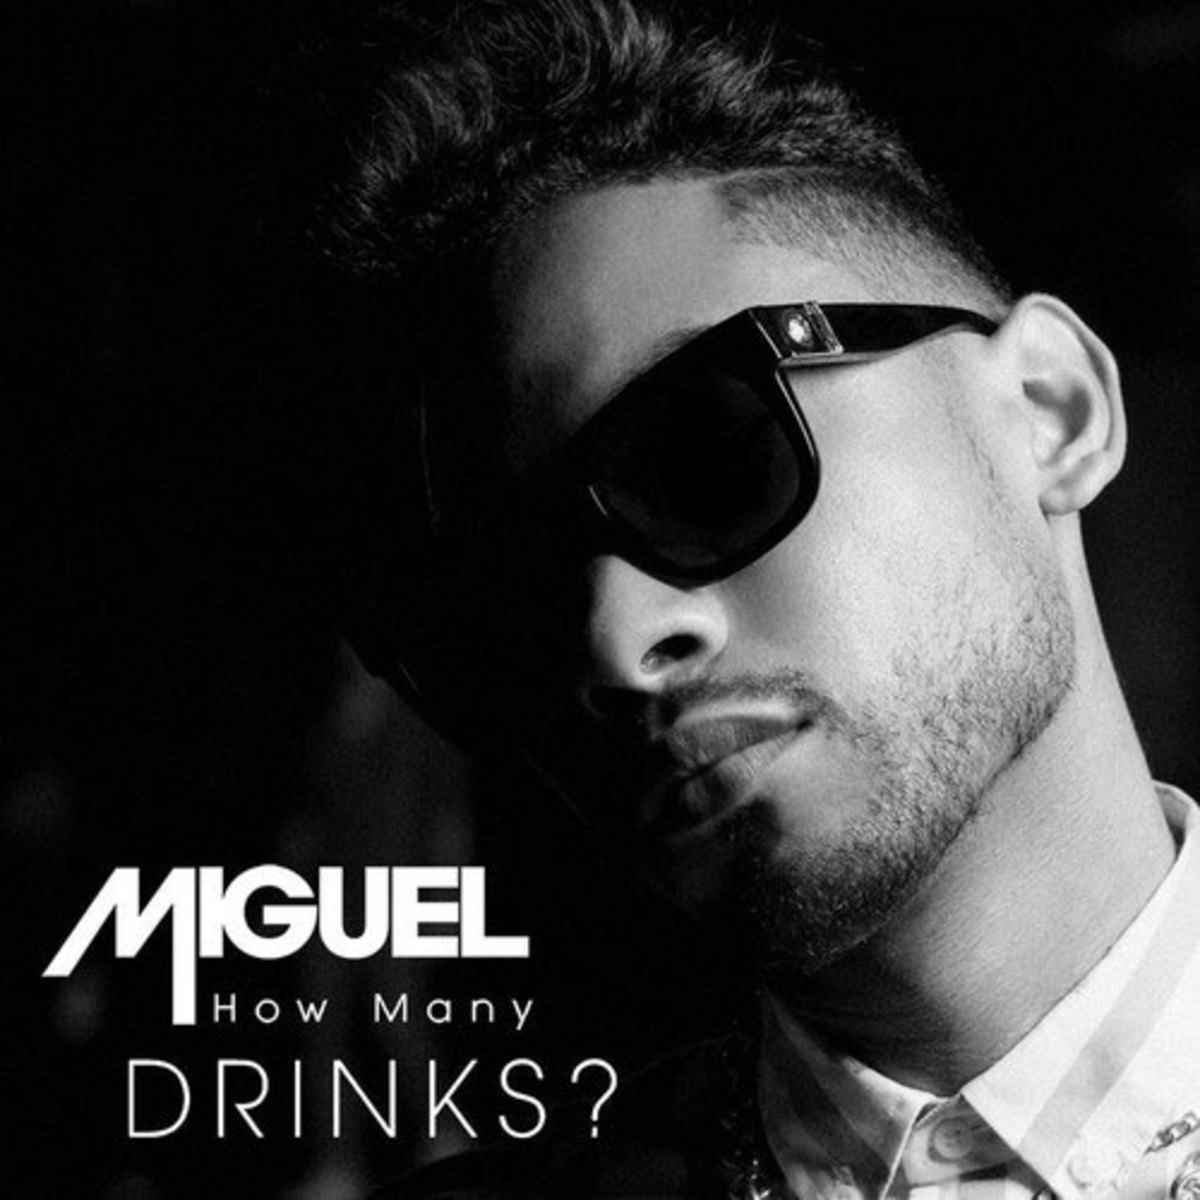 miguel-howmanydrinks.jpg